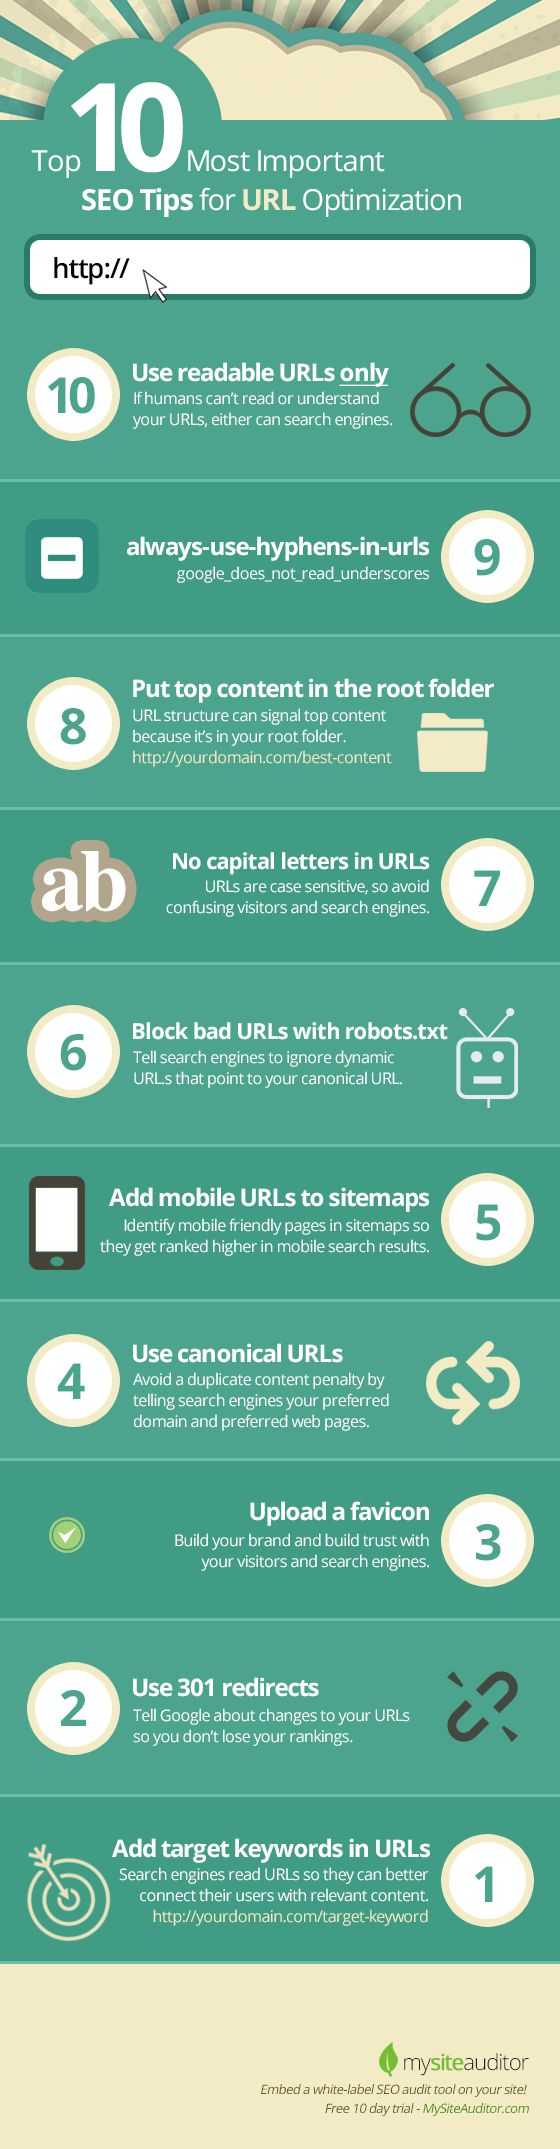 how-to-optimize-url-for-seo